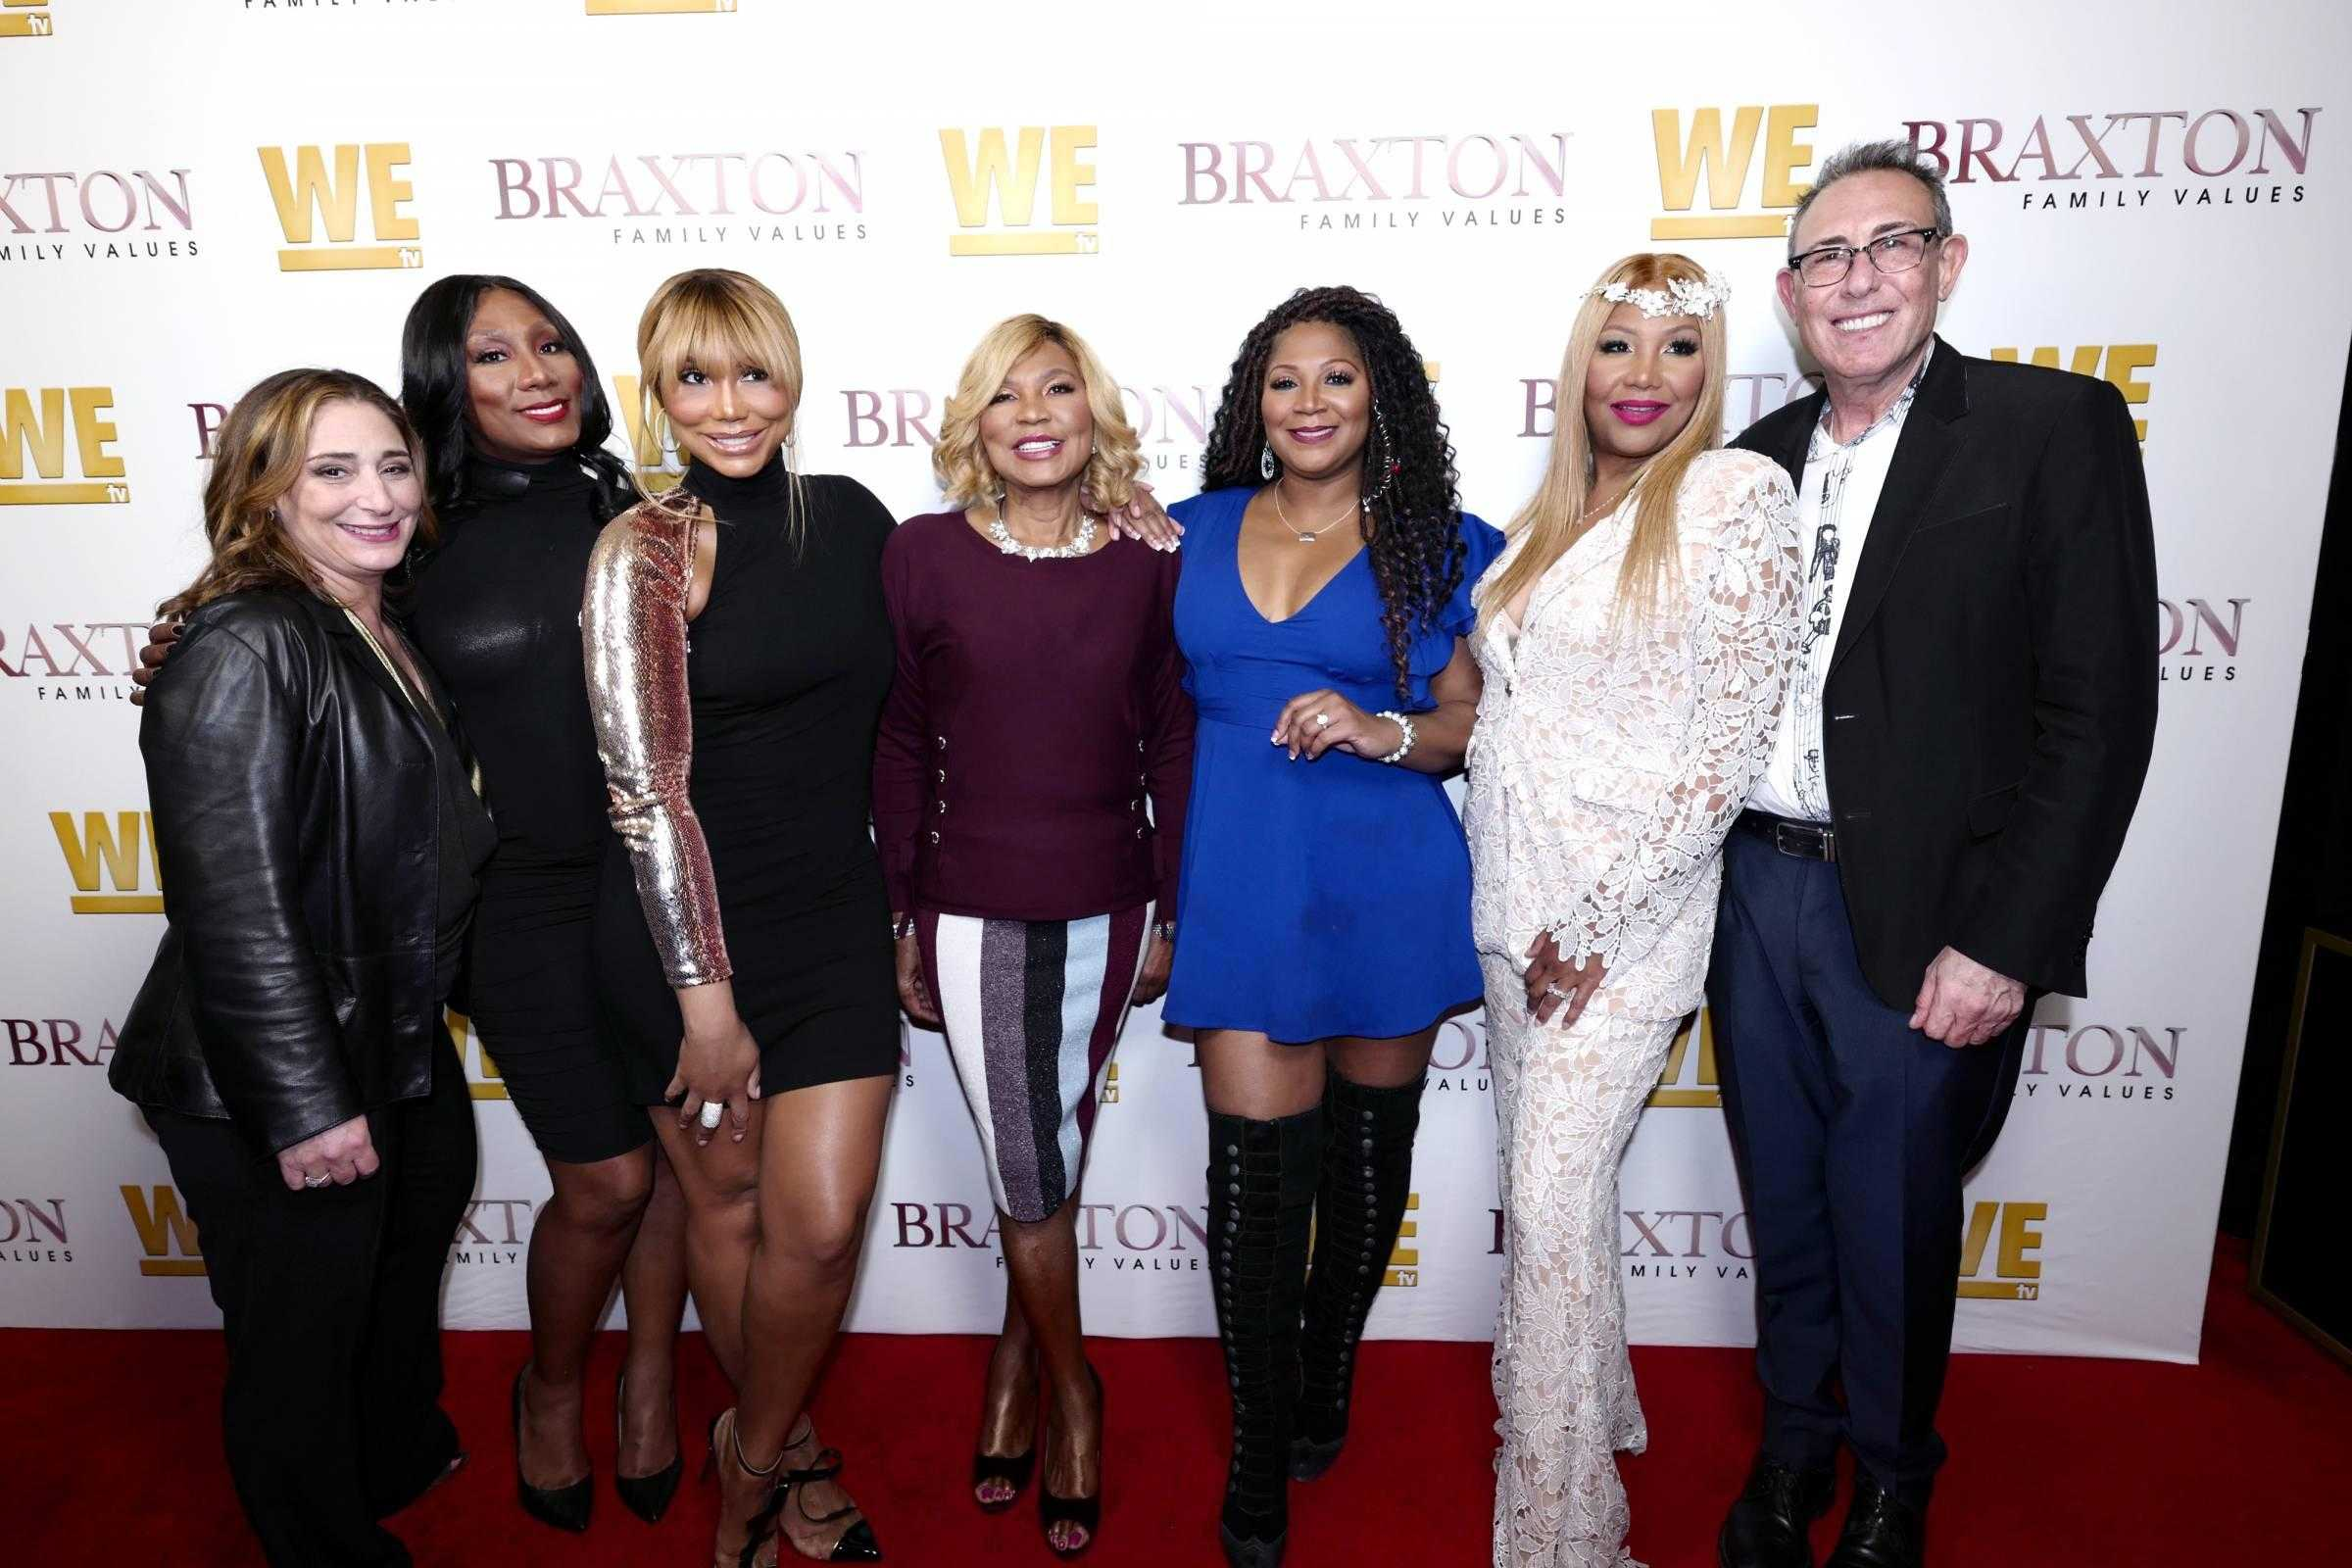 Event Recap: Braxton Family Values Premiere Event [Photos]